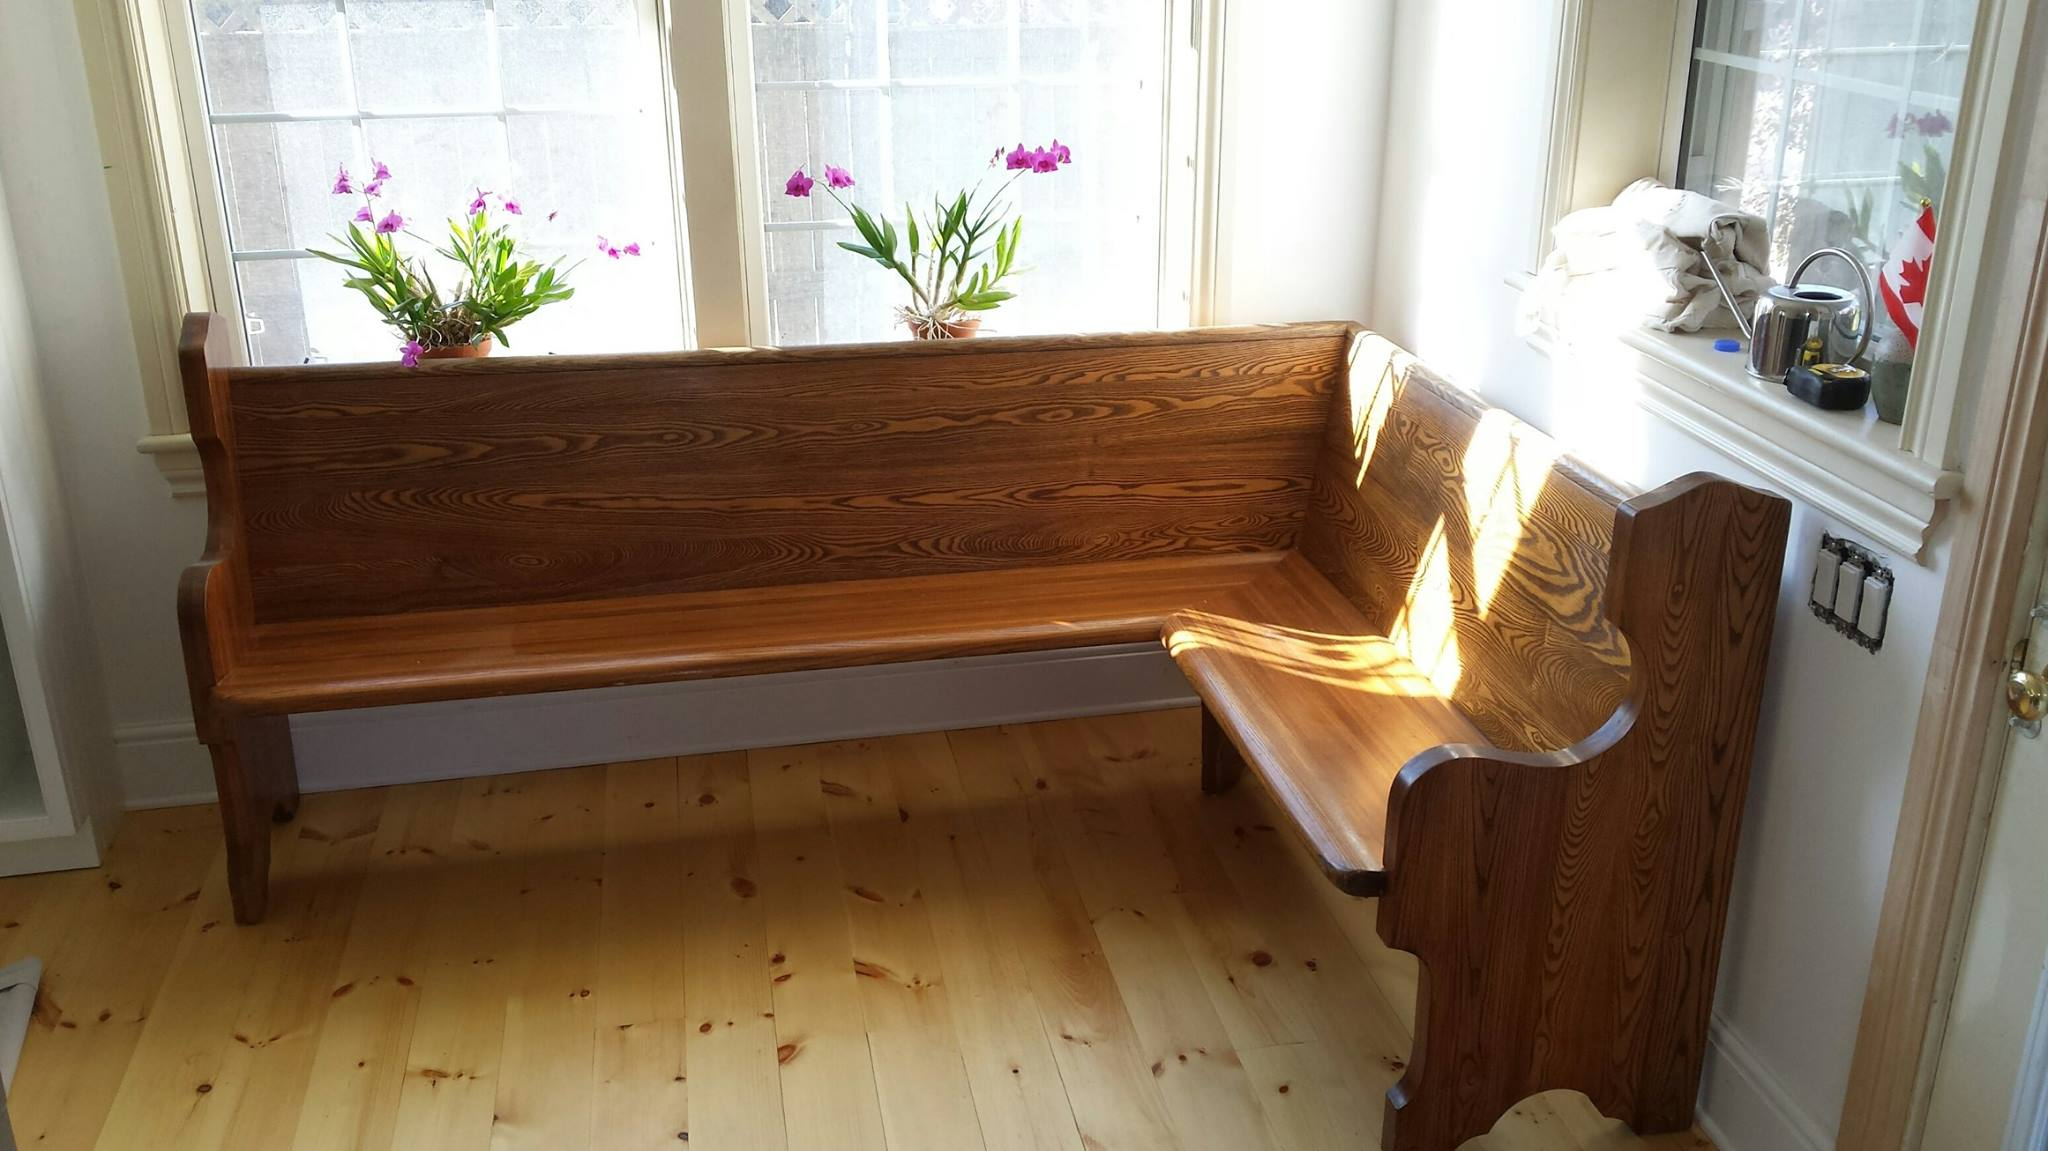 Church pew turned into a corner seat for a breakfast bar.